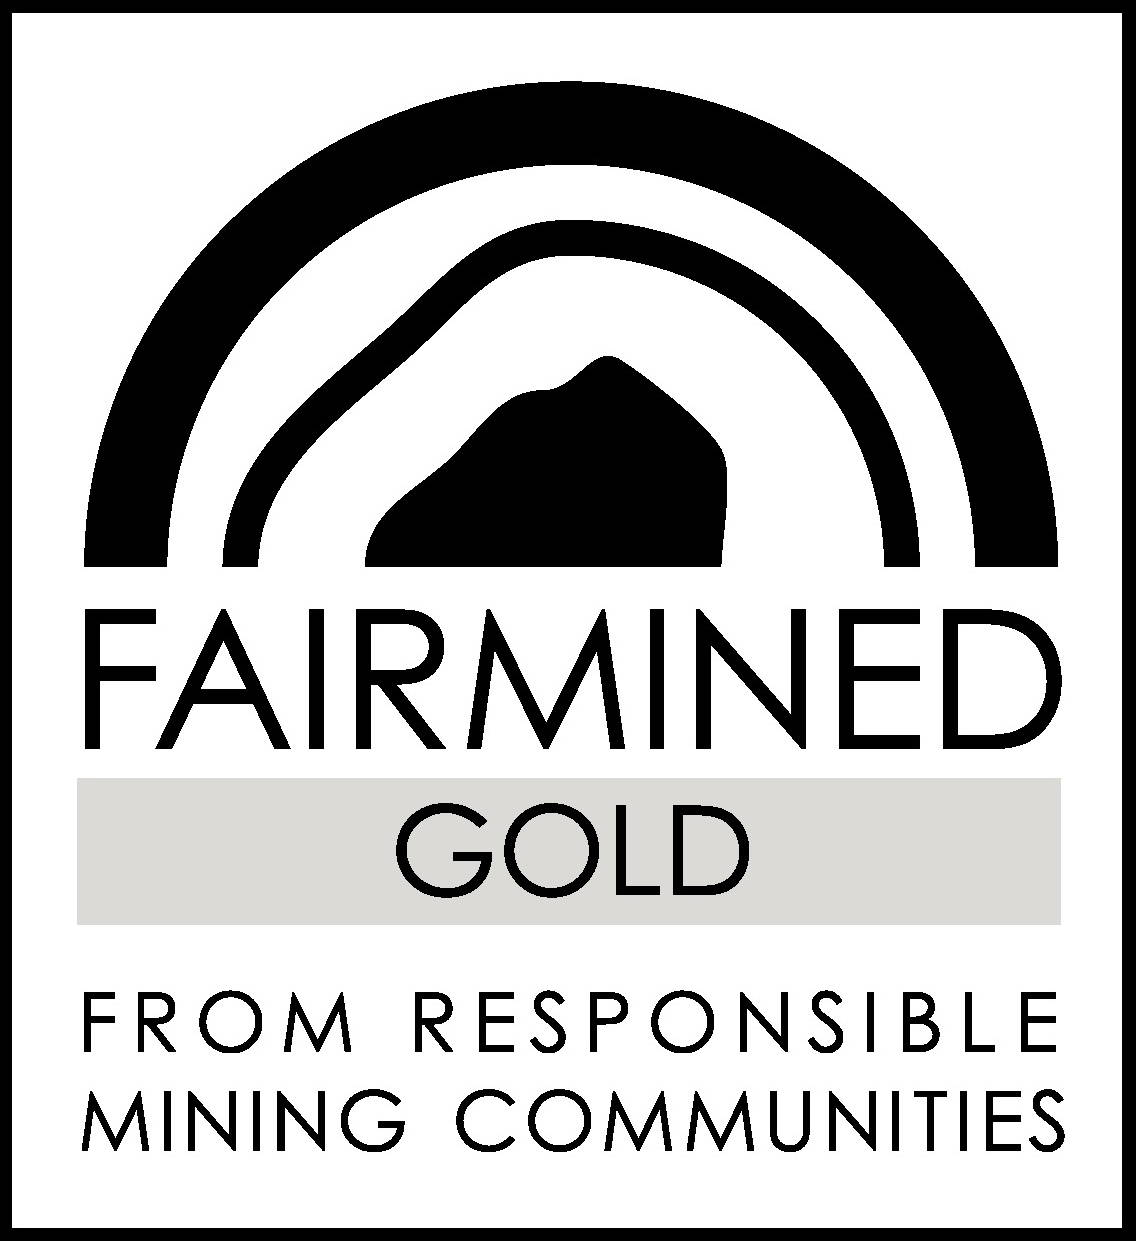 Logo : Fairmined Gold from responsible mining communities